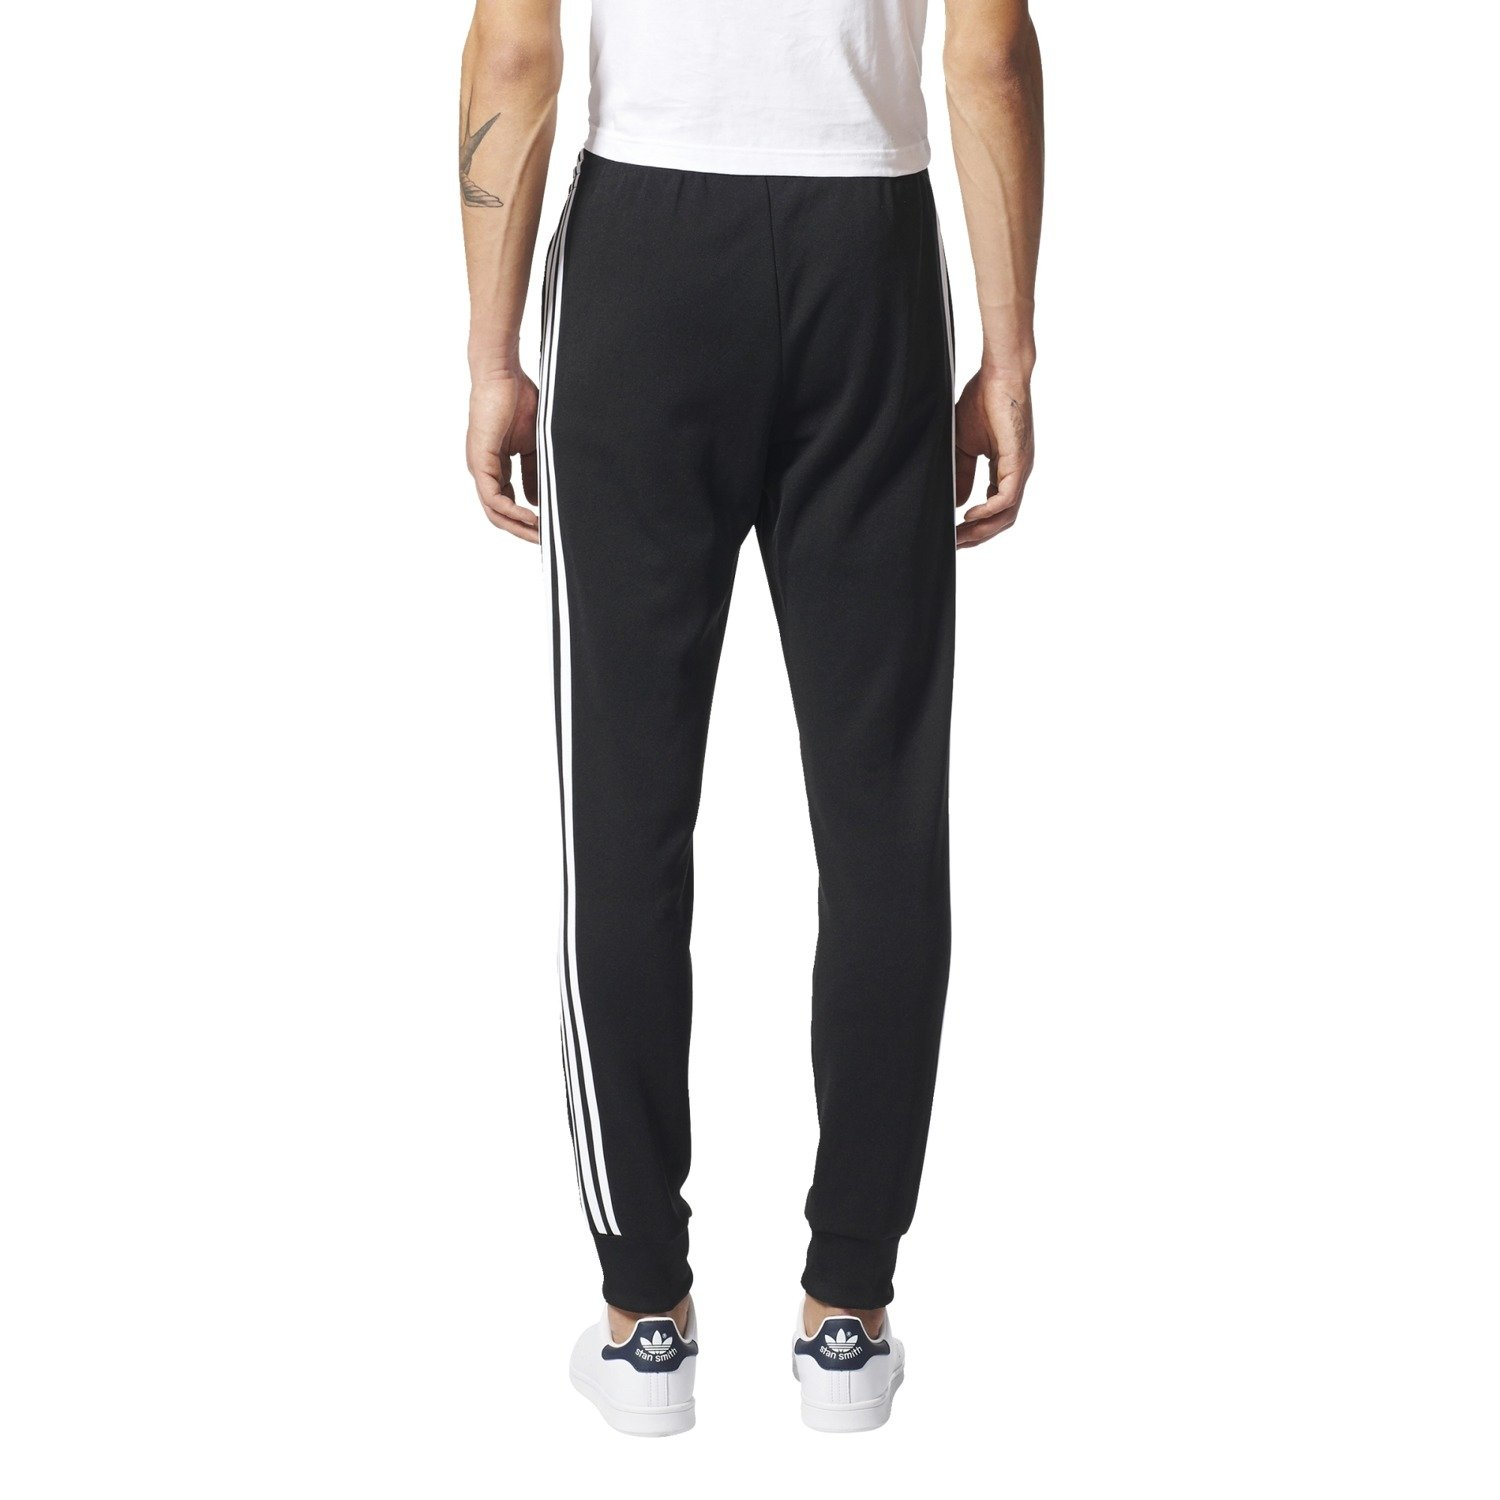 Spodnie adidas Superstar Cuffed Track Pants AJ6960